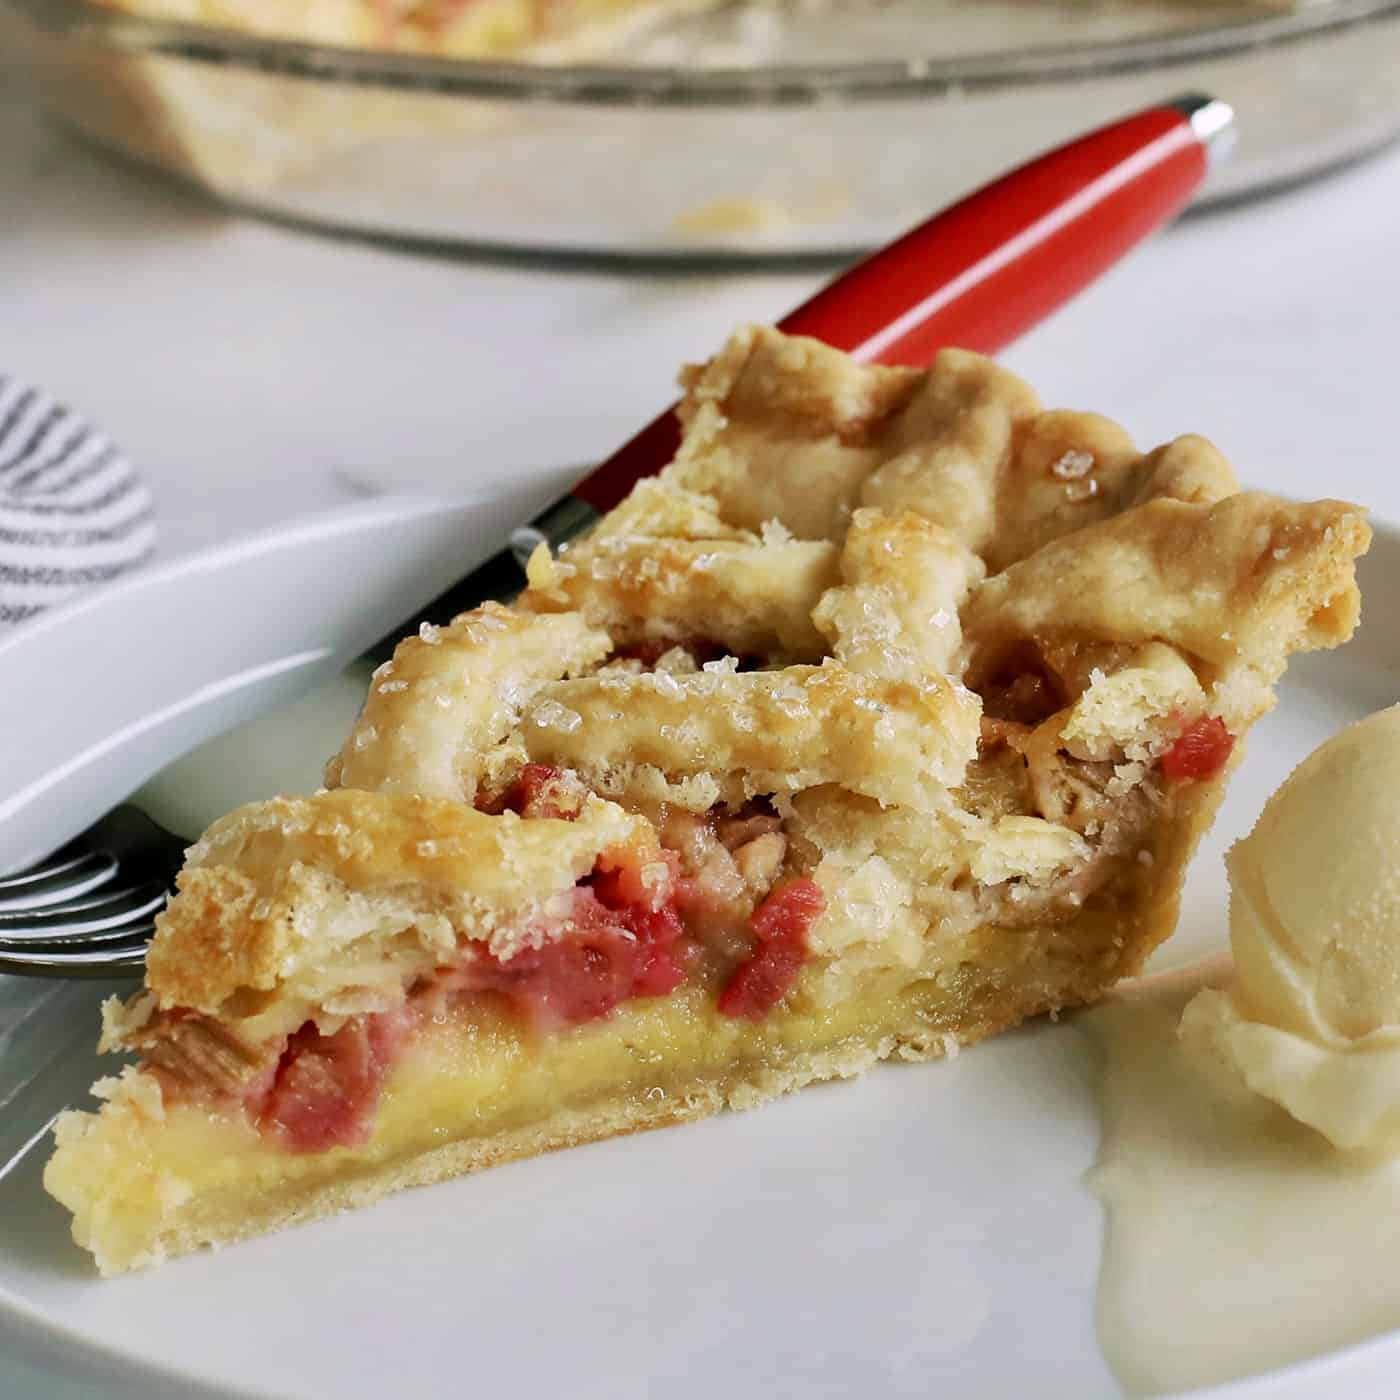 a slice of rhubarb custard pie on a white plate with a scoop of ice cream